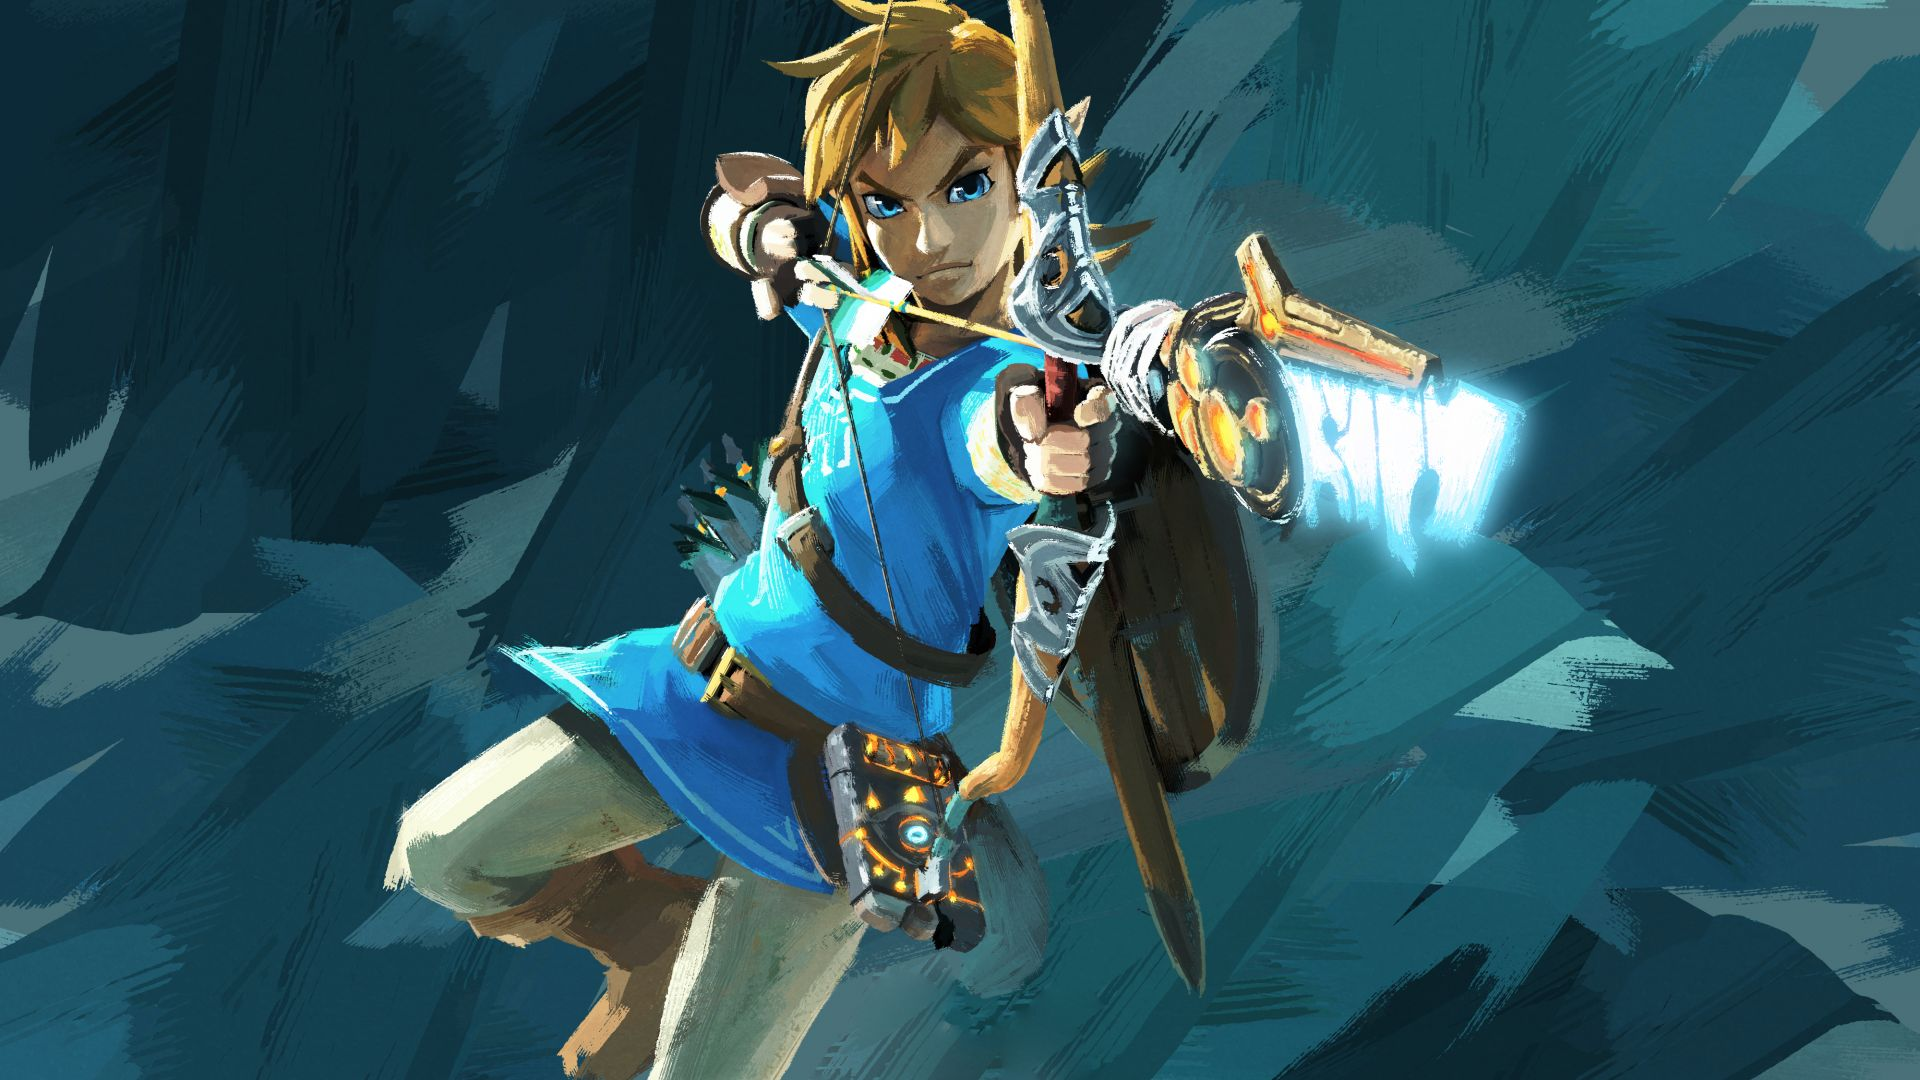 легенда зельды, The Legend of Zelda: Breath of the Wild, природа, лучшие игры, The Legend of Zelda: Breath of the Wild, best games, nature, Wii U, NX